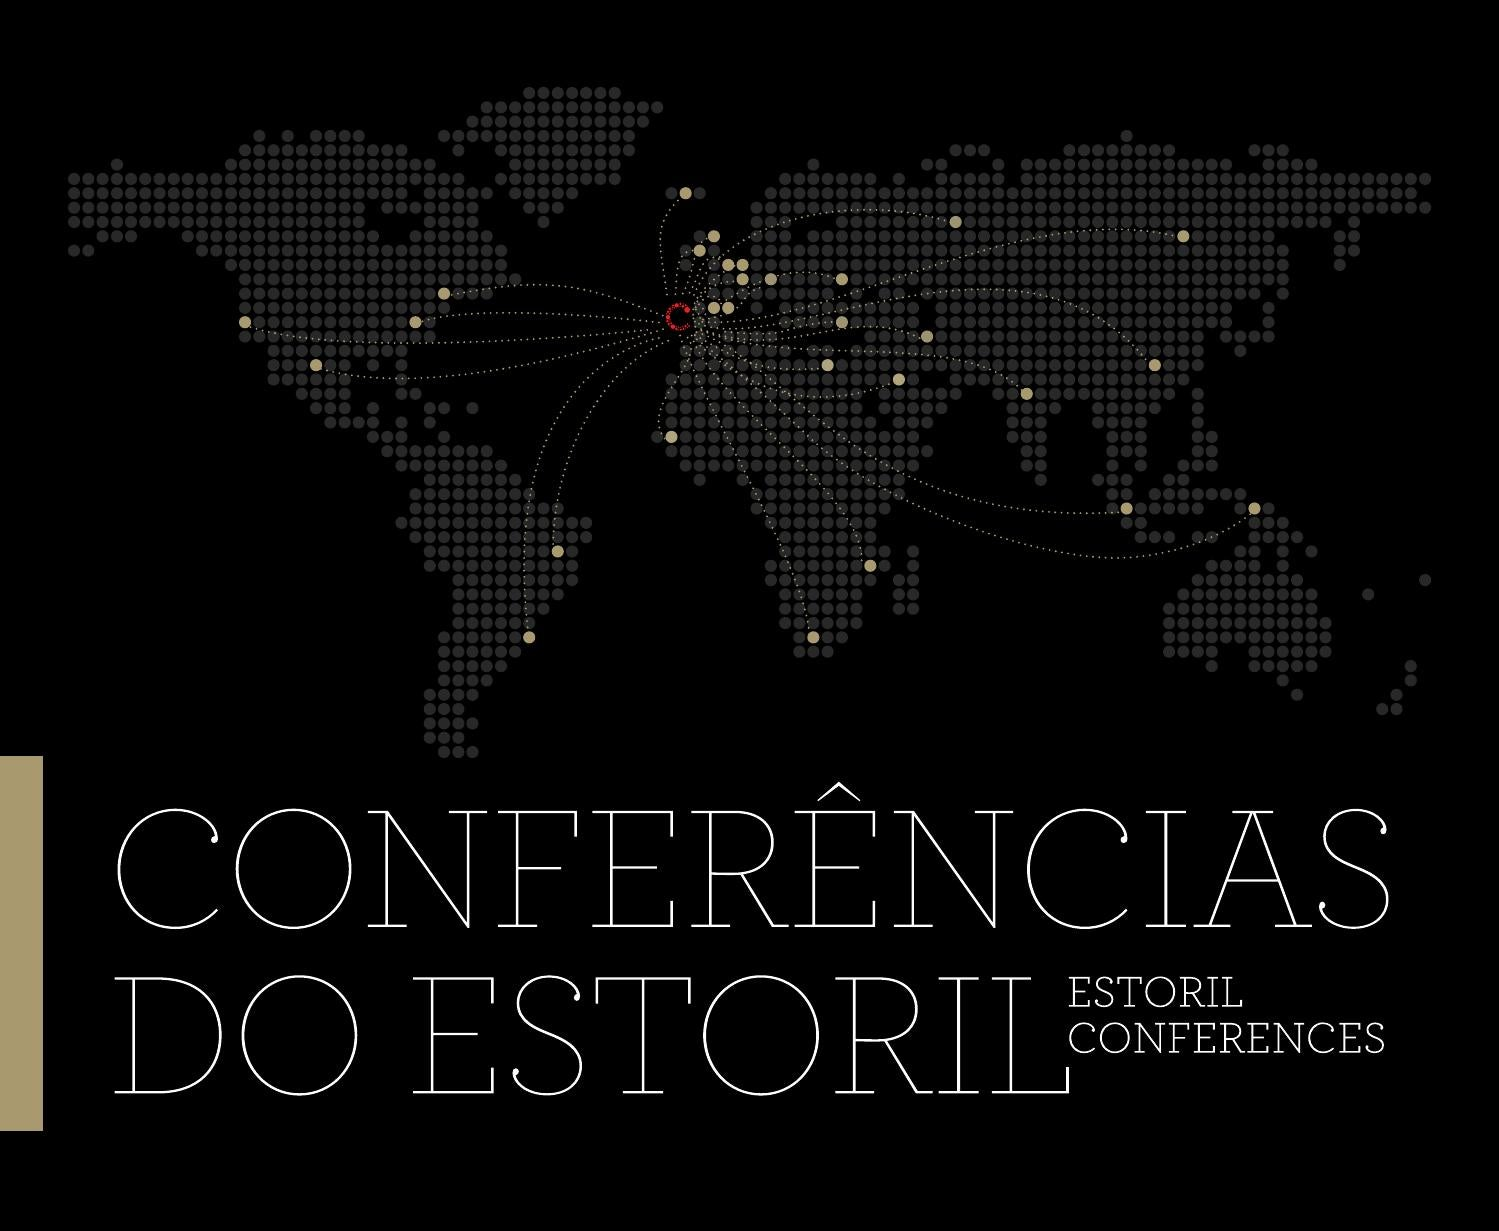 Book estoril conferences 2013 by estoril conferences issuu fandeluxe Choice Image